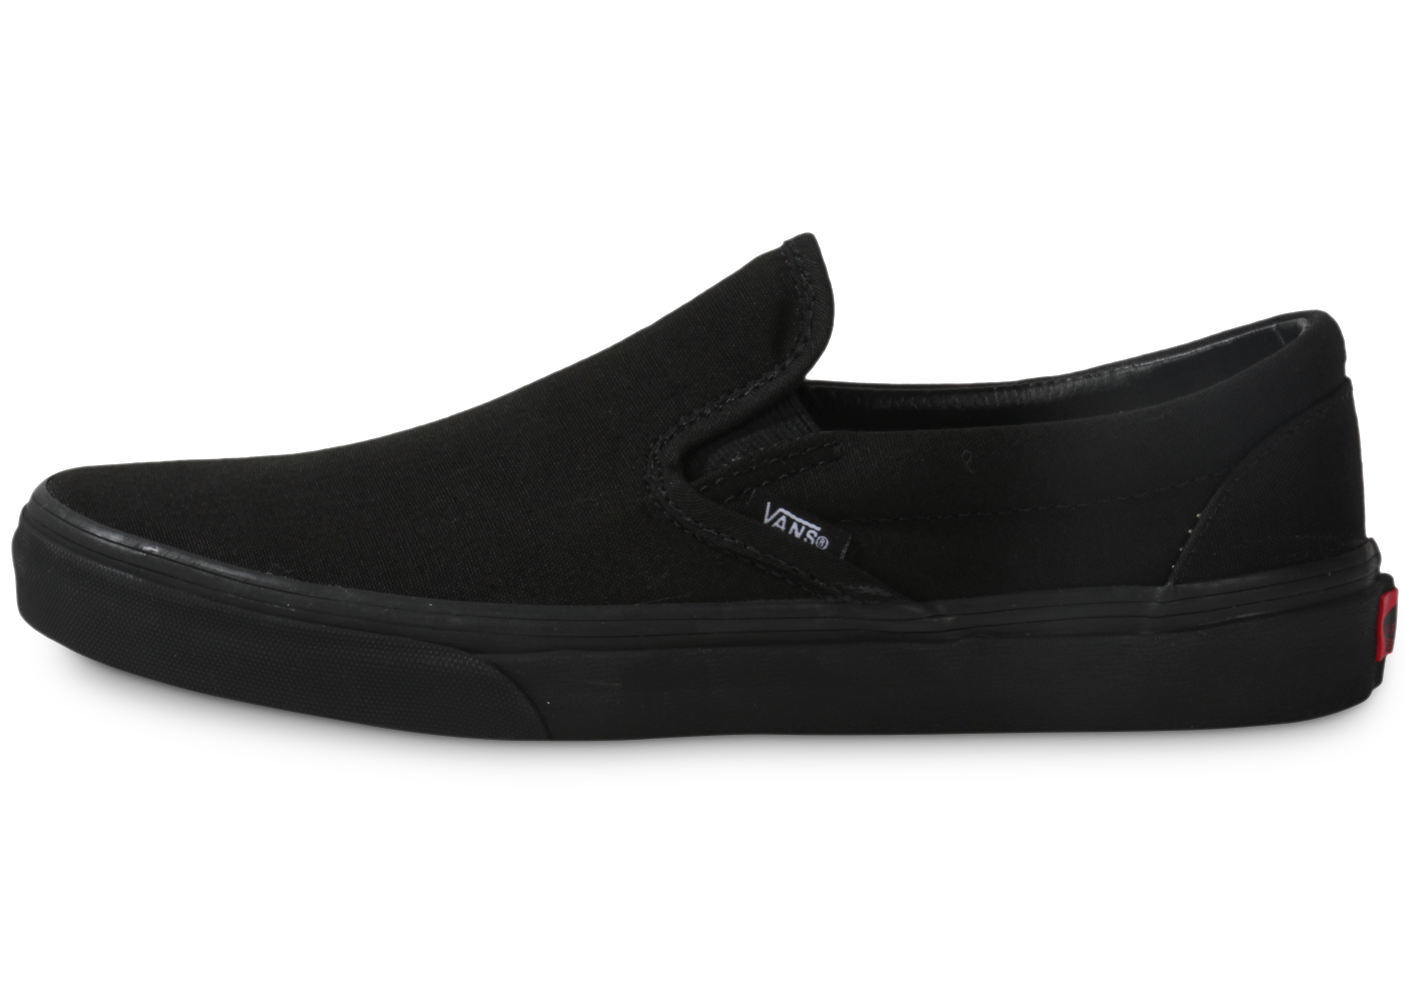 Vans Homme Classic Slip-on All Black Skate